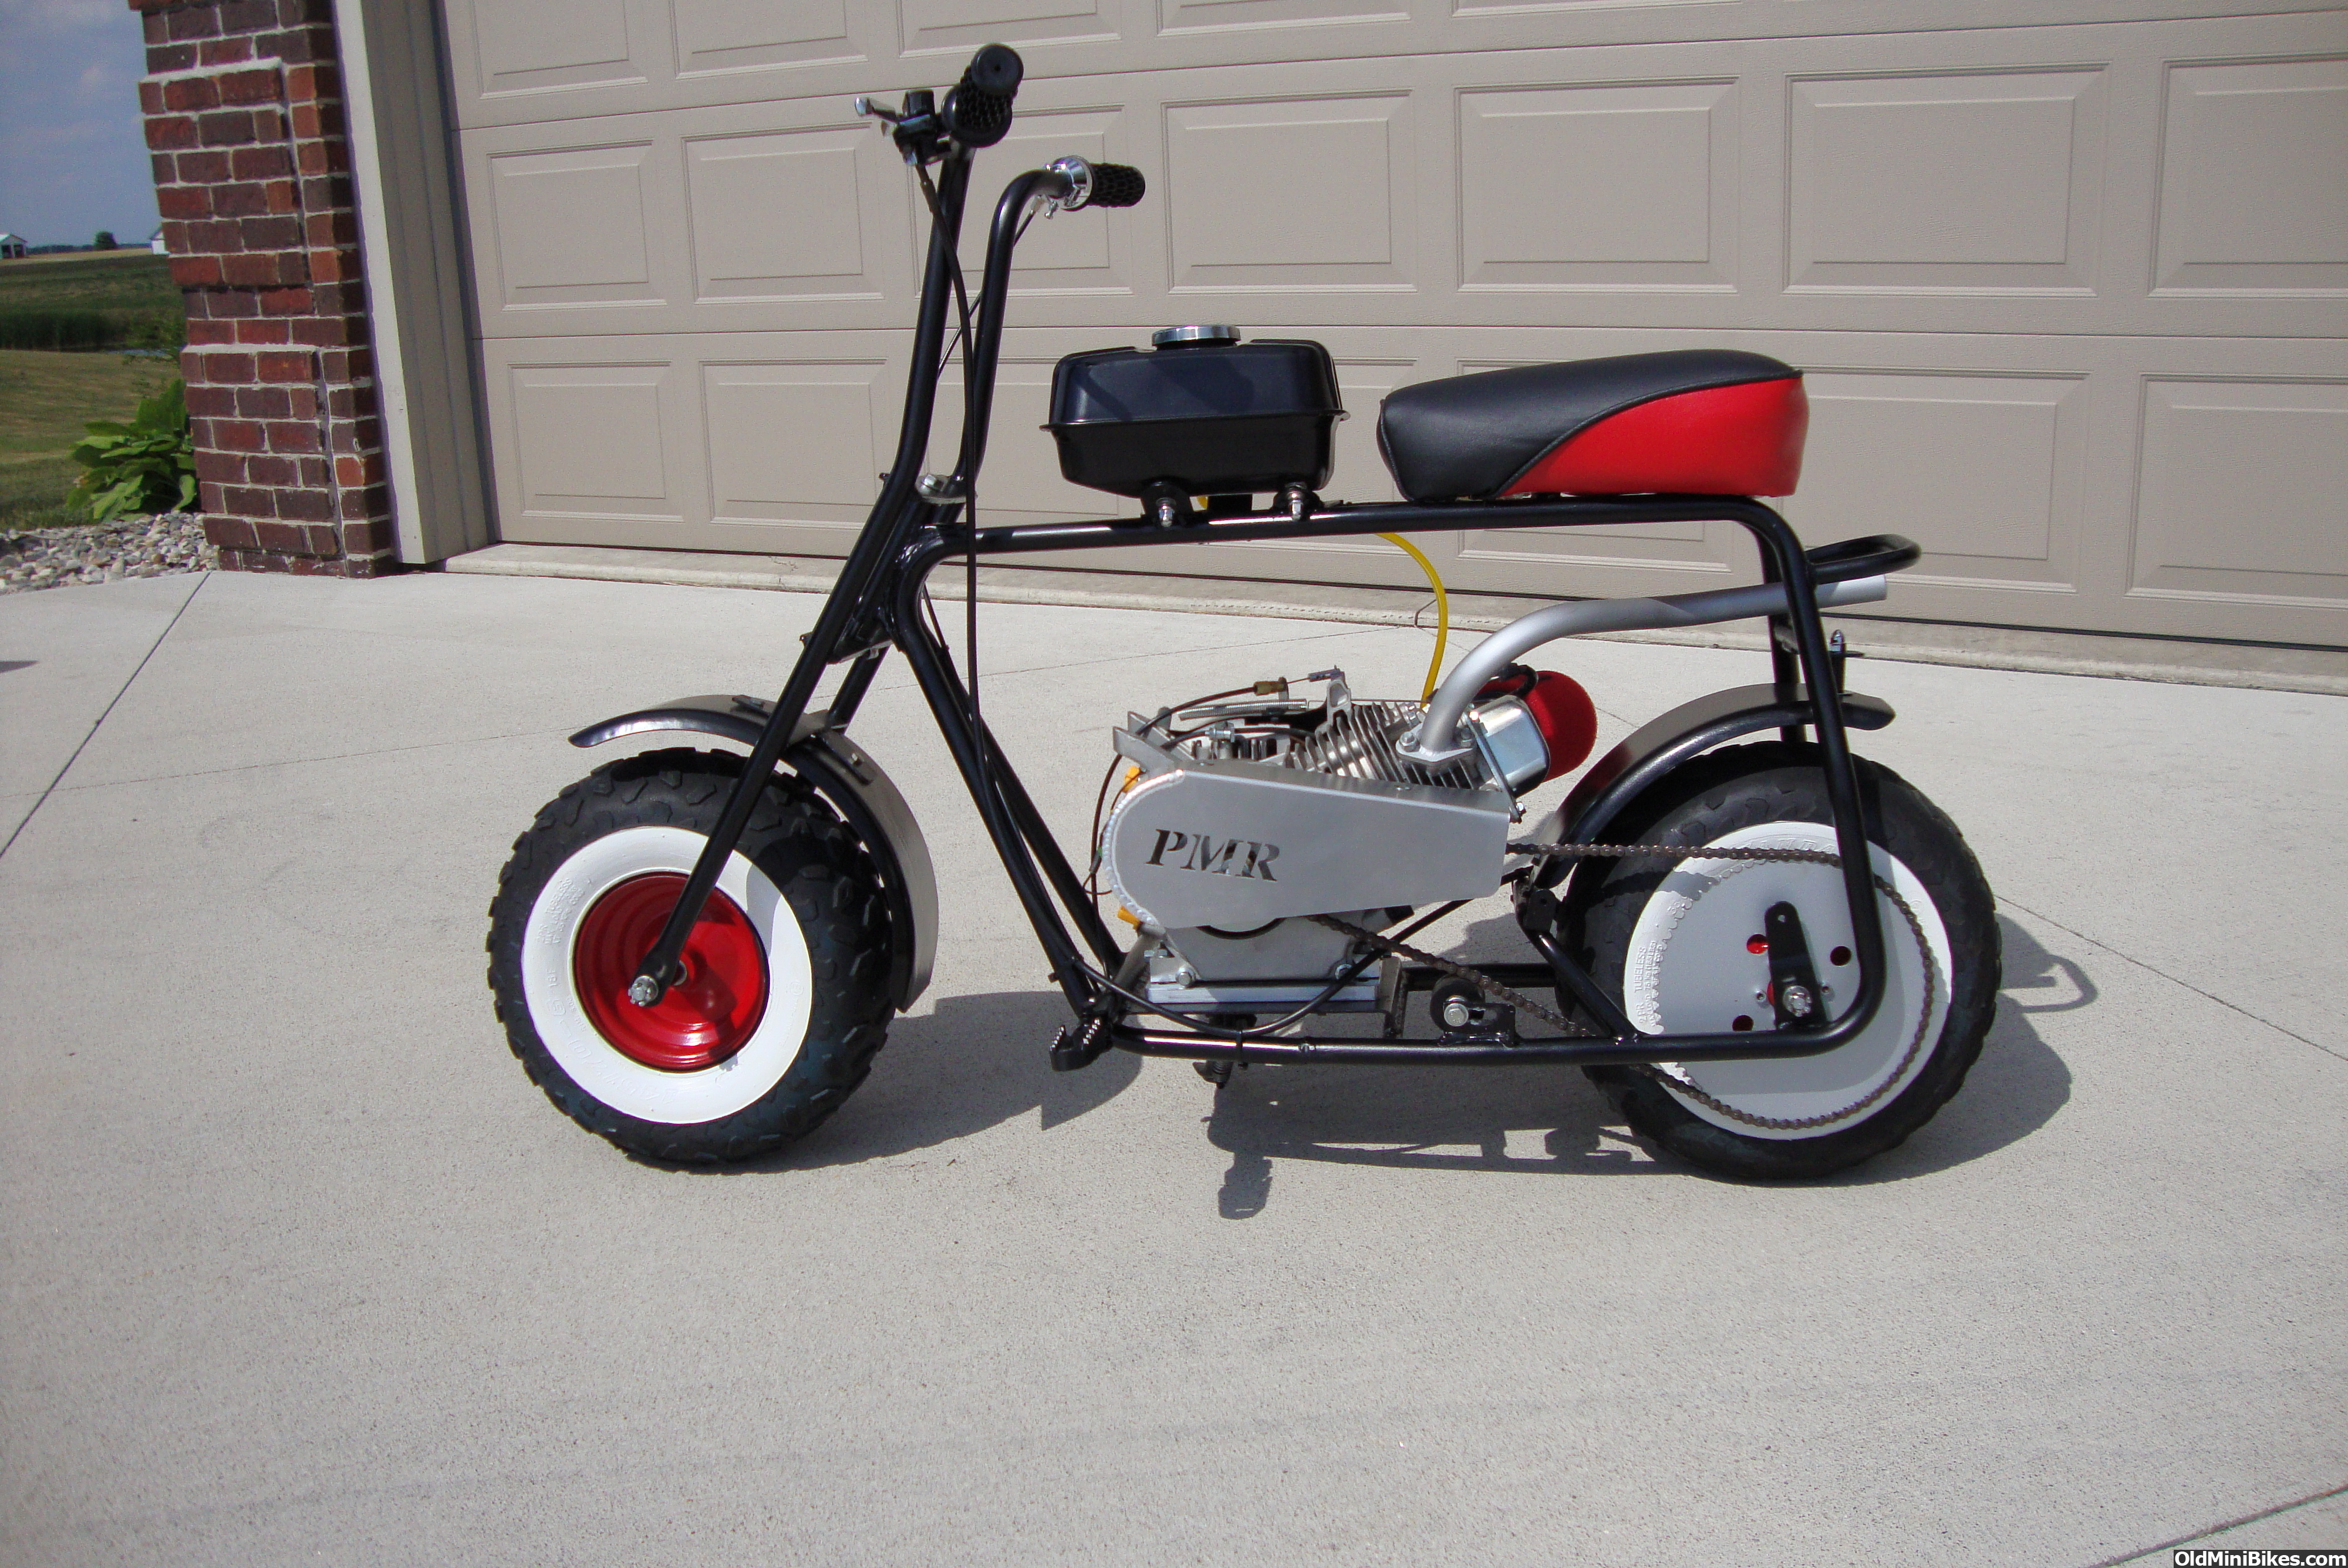 1000 images about old school mini bike on pinterest minibike mini bike and scooters. Black Bedroom Furniture Sets. Home Design Ideas